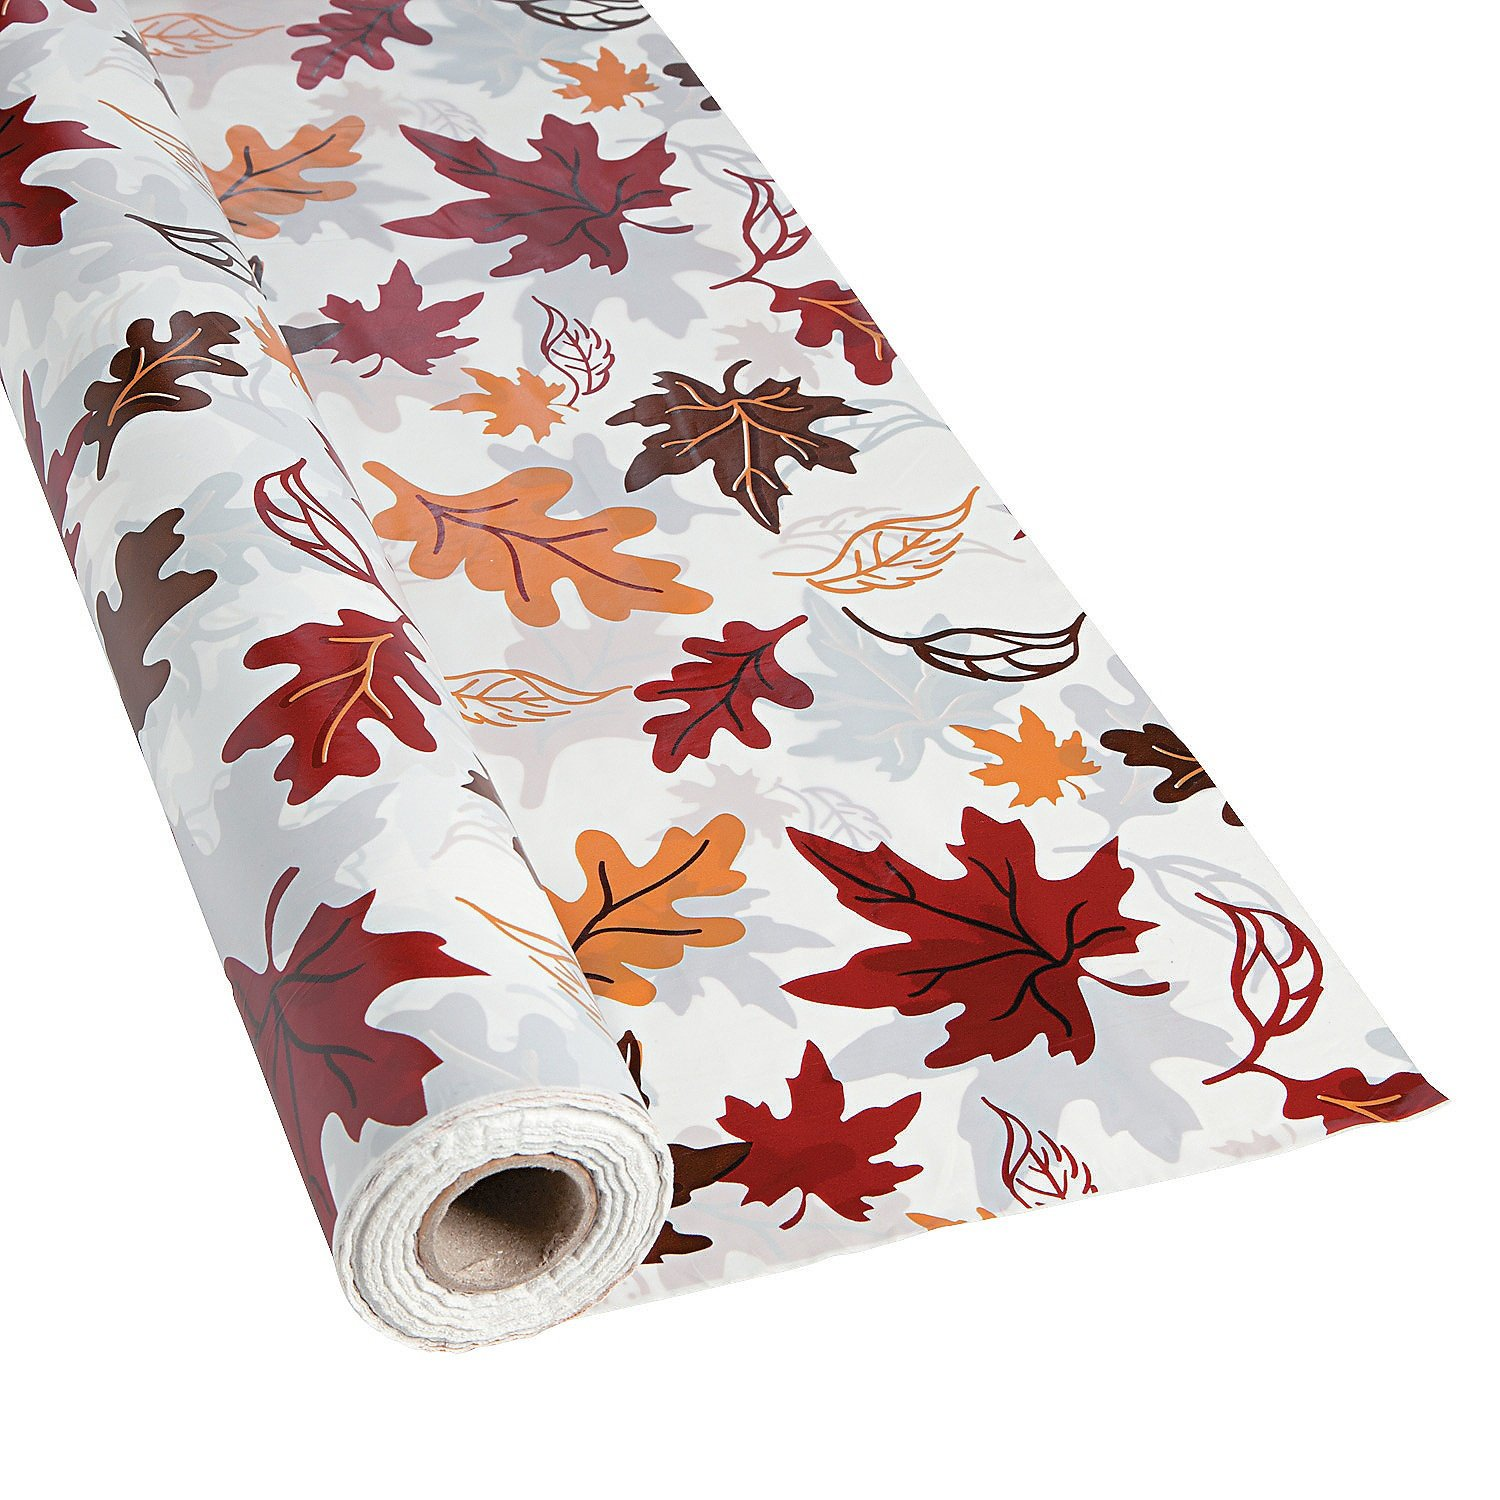 Plastic Fall Leaves Tablecloth Roll   Halloween/Thanksgiving/Autumn Decor:  Kitchen U0026 Dining